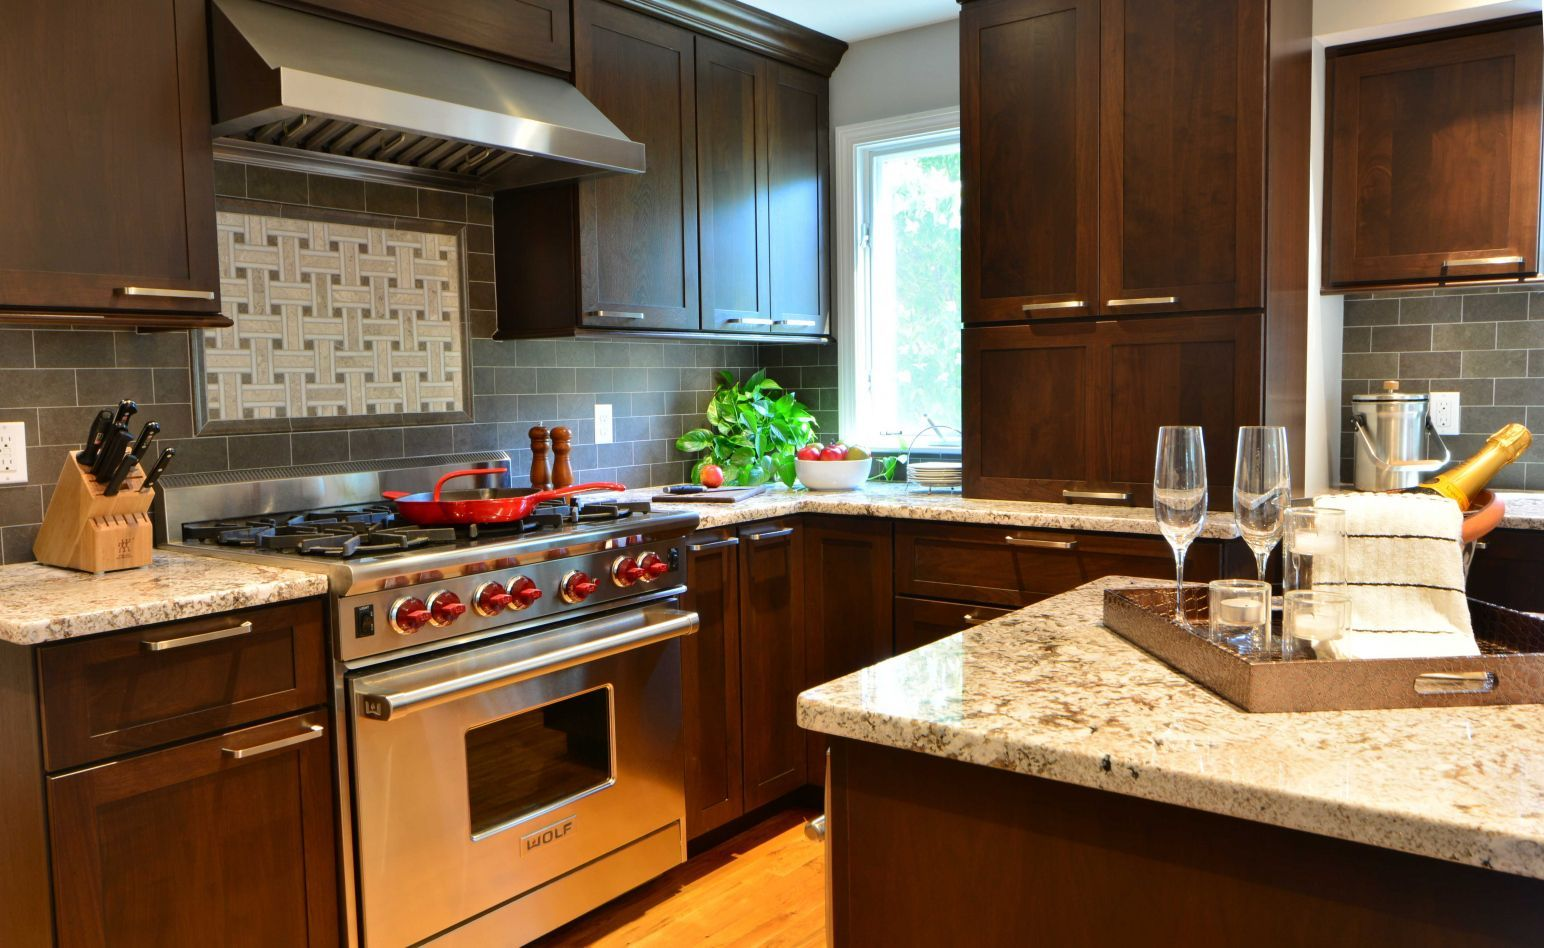 Narrow Kitchen Remodel Before And After And Ranch Kitchen Remodel Before After In 2020 Simple Kitchen Remodel Kitchen Remodel Cost Condo Kitchen Remodel